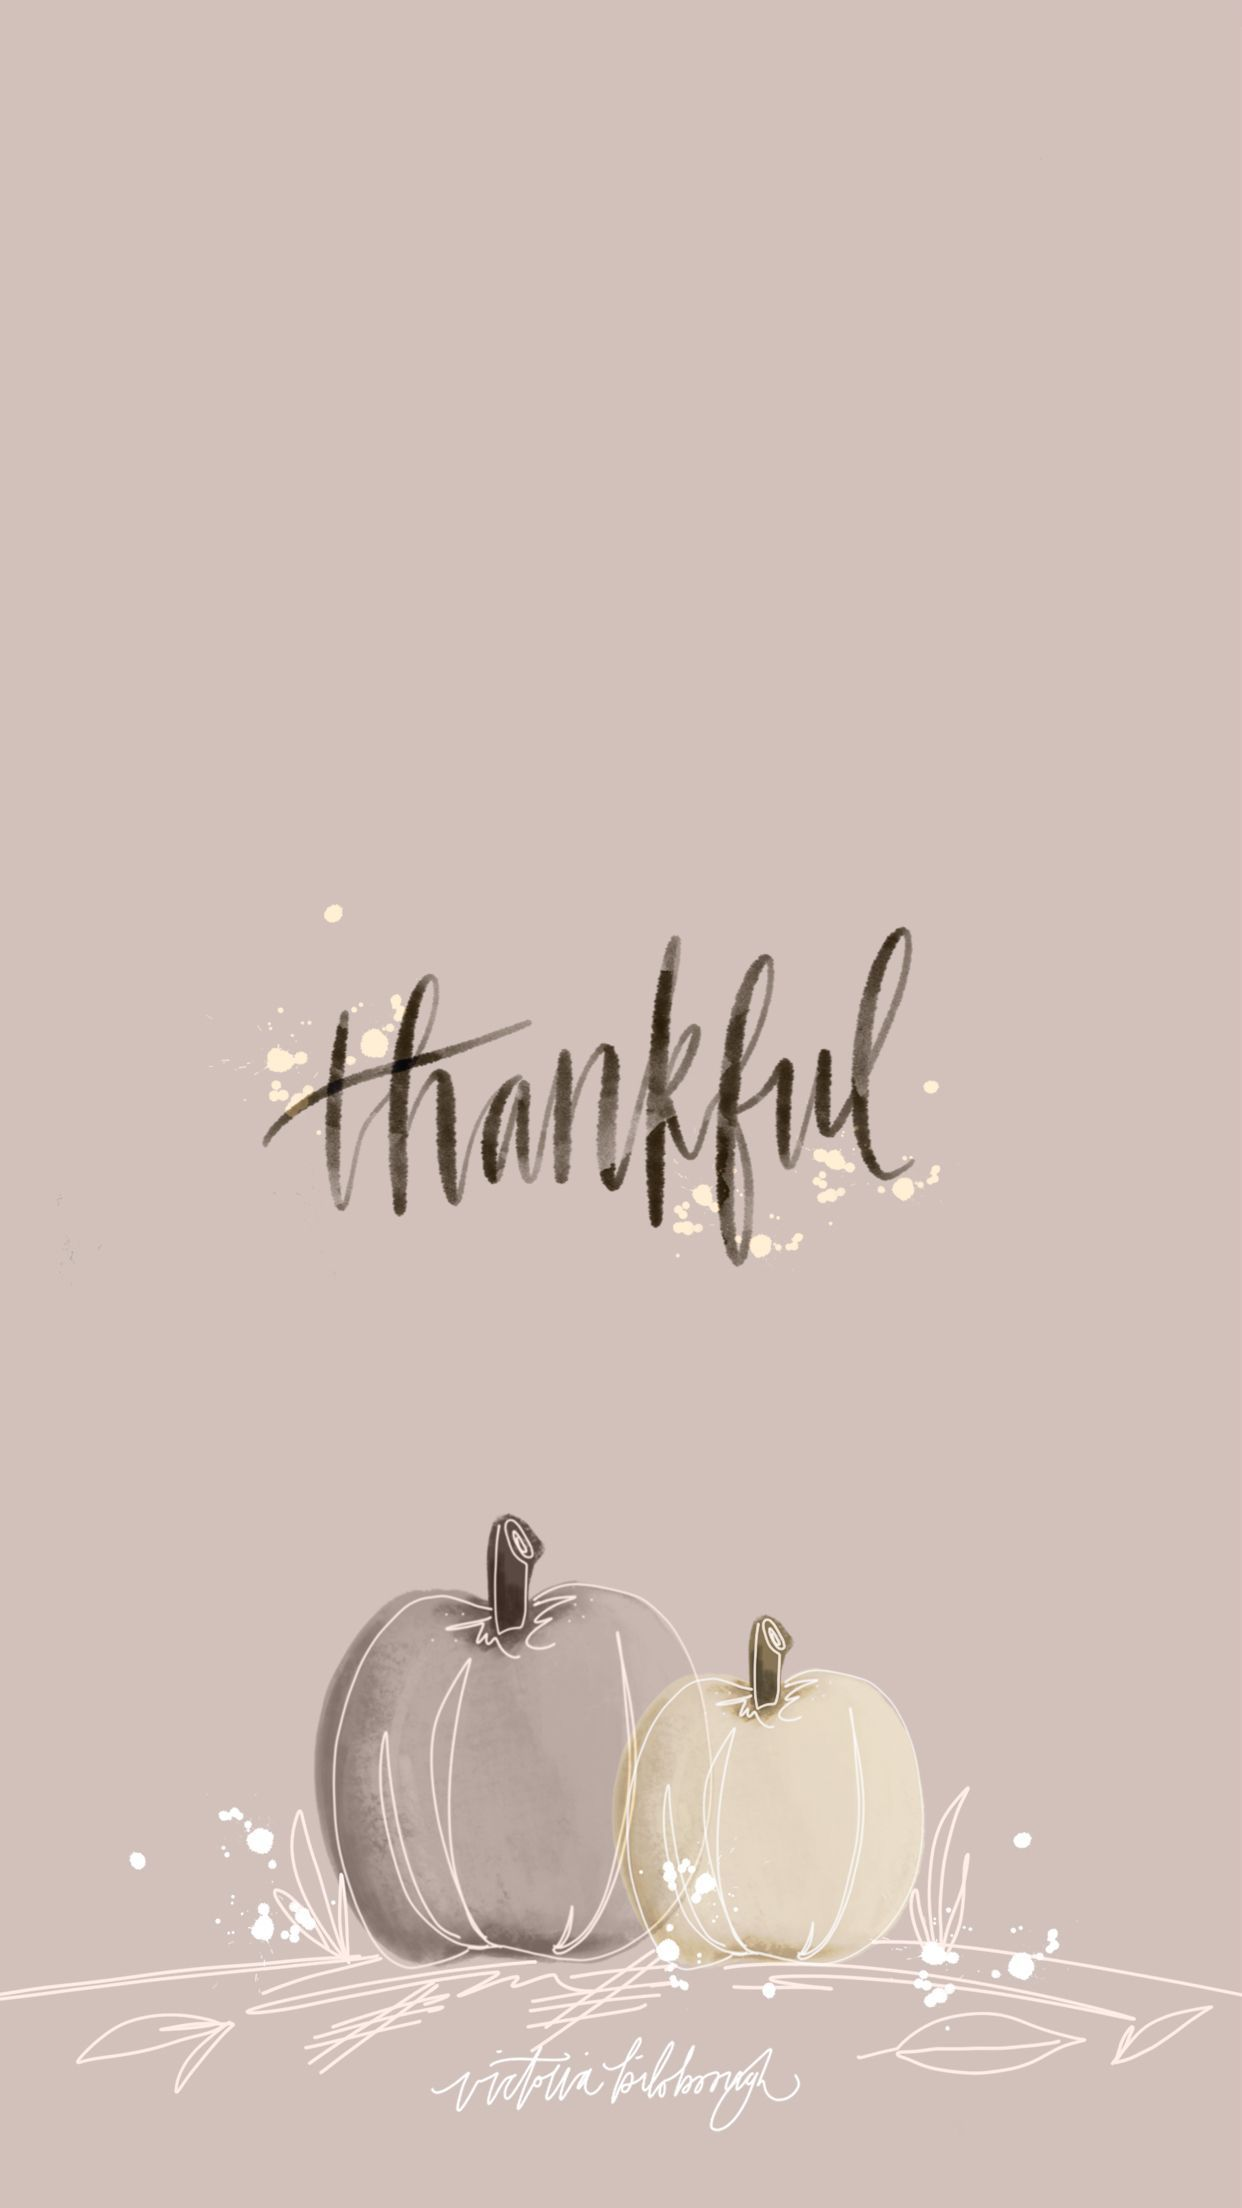 1242x2208 Free: Thanksgiving Wallpapers | Backgrounds | Fall wallpaper ...